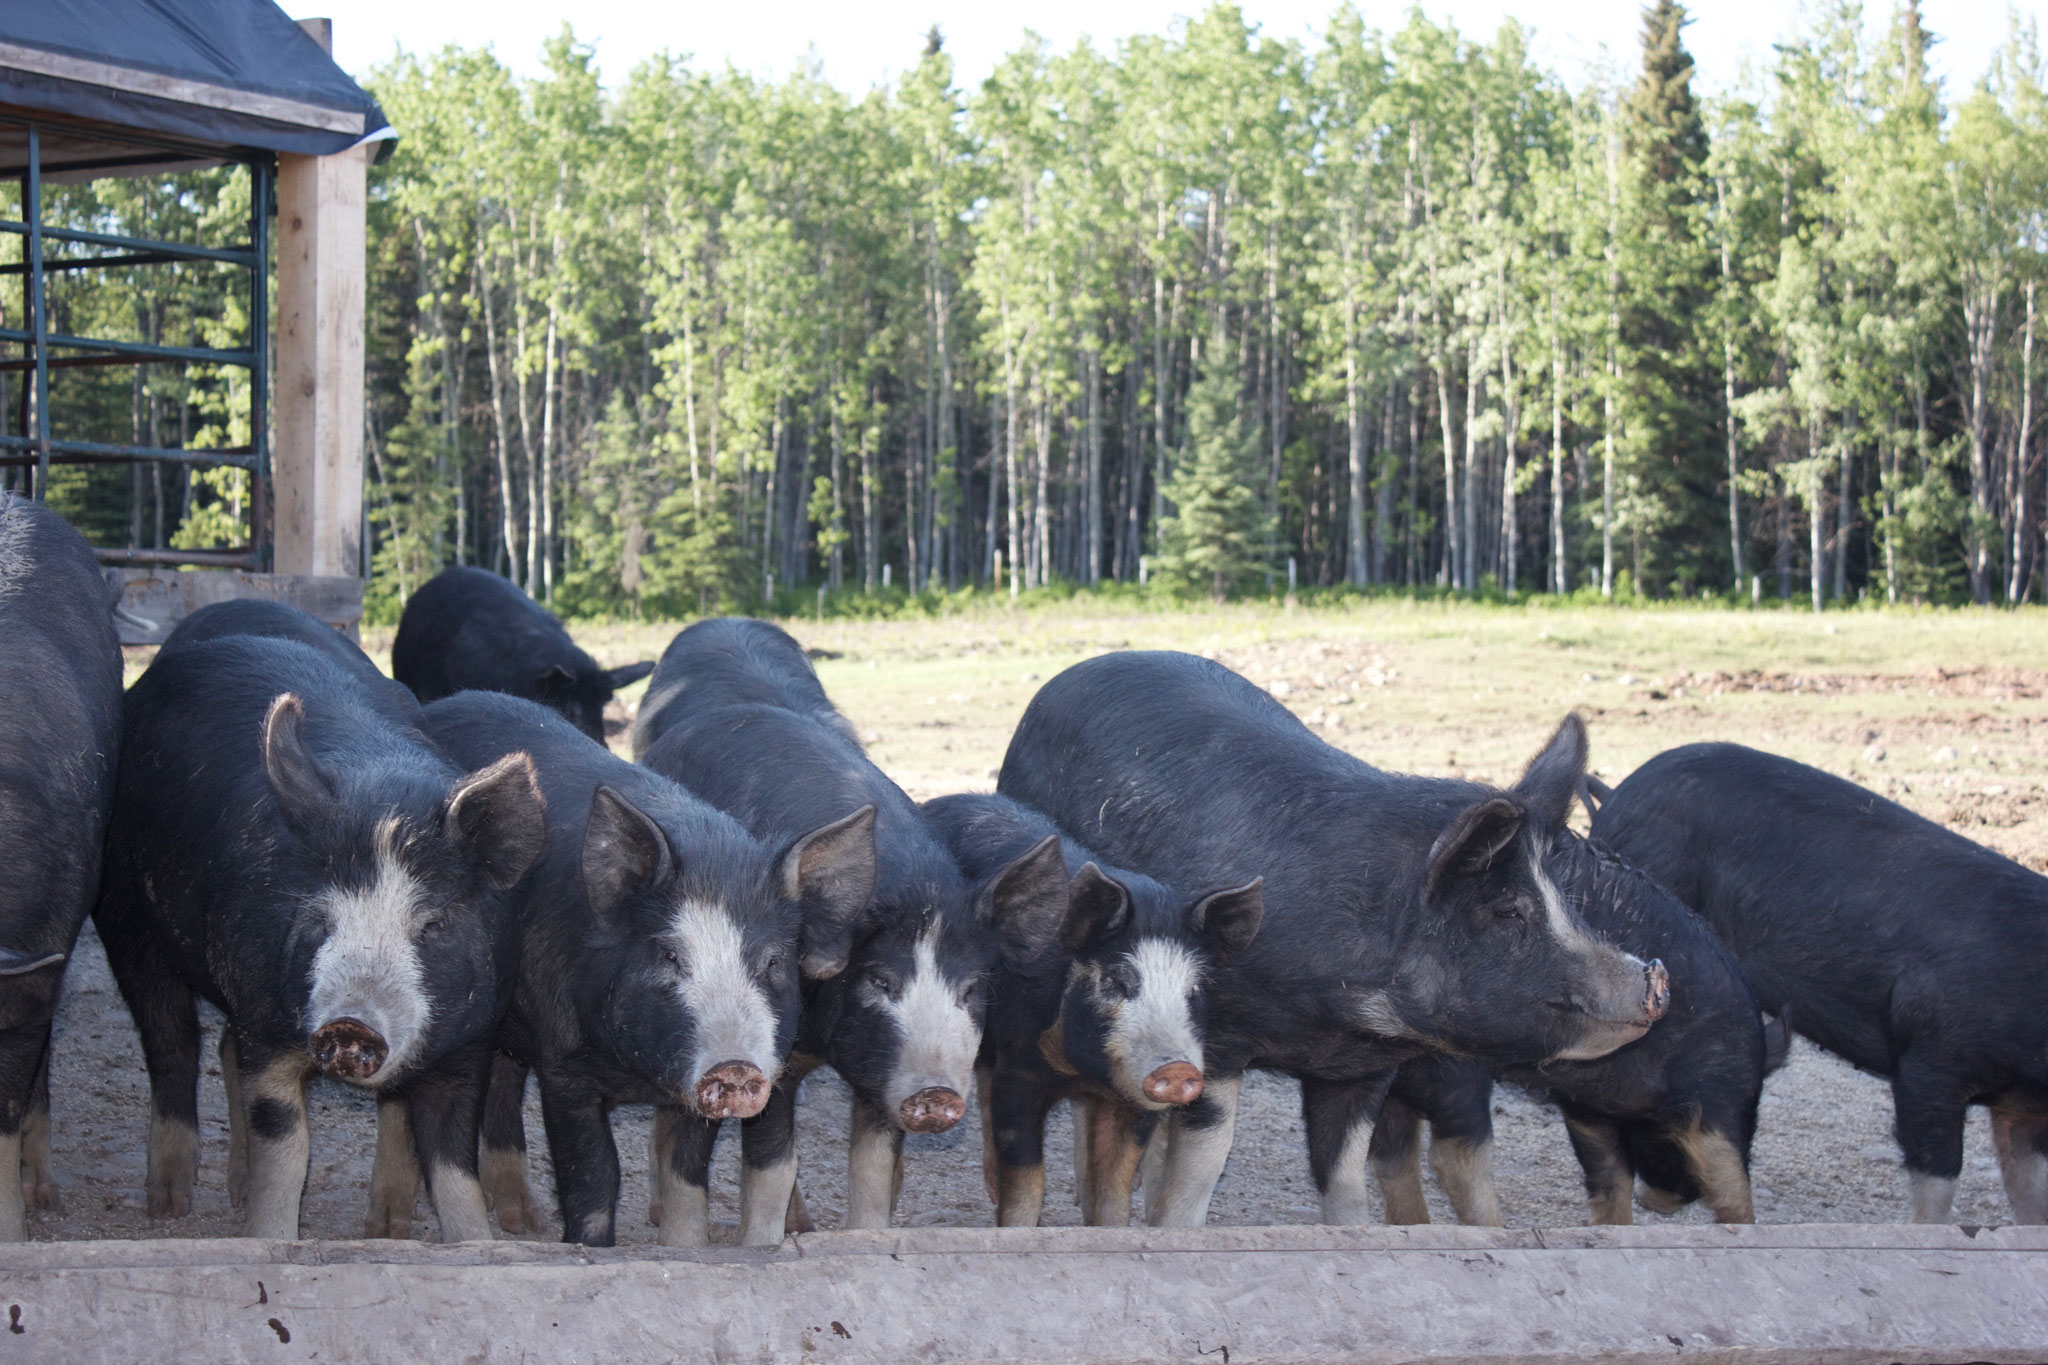 Happy Pigs waiting to get feeded